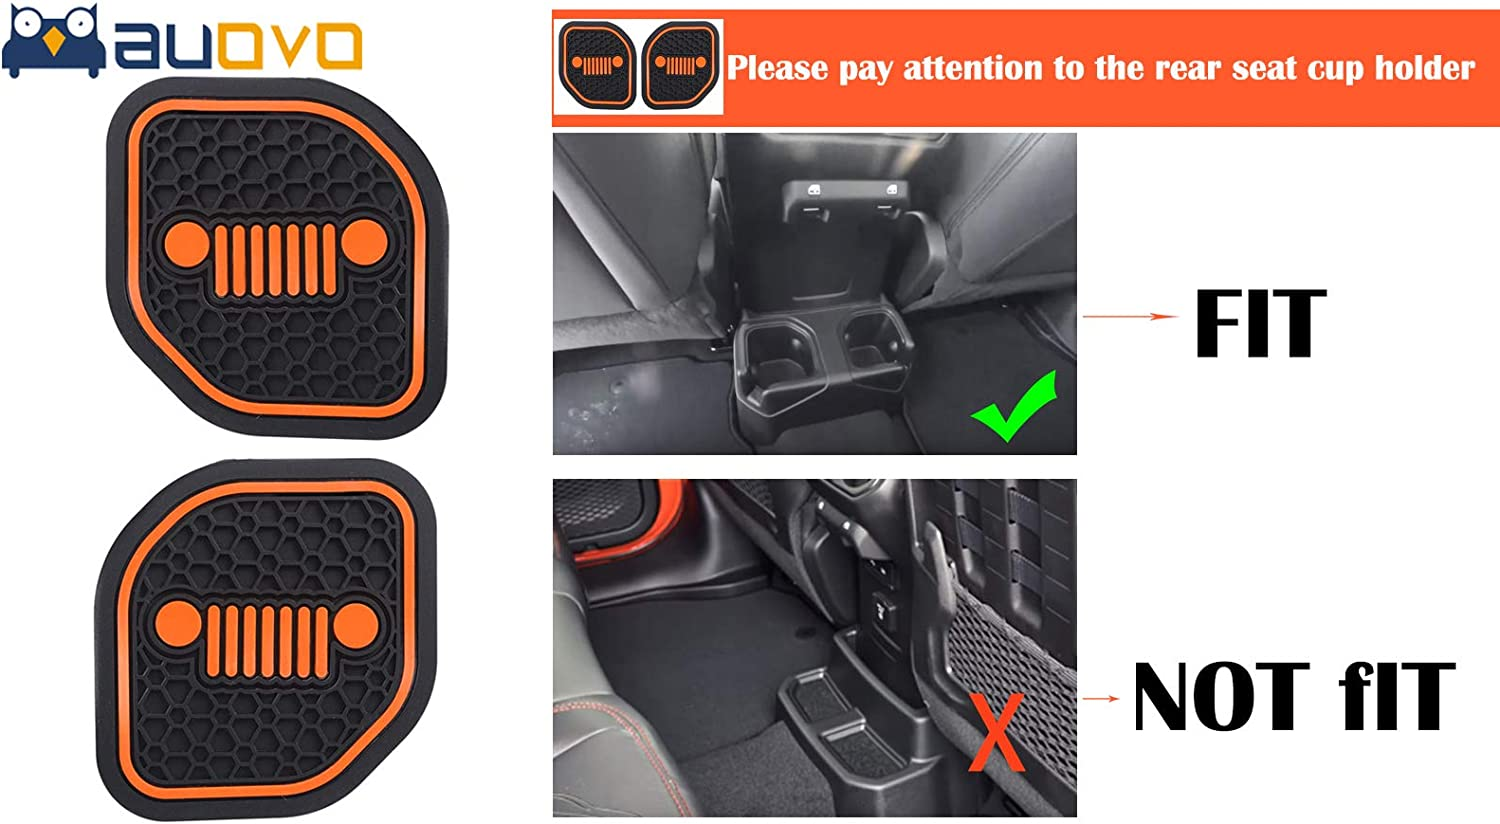 Auovo Auto Cup Holder Inserts Coaster Fit for 2018 2019 Jeep Wrangler JL JLU 2020 Gladiator JT Cup Mat Pad Interior Decoration Accessories 4 Pcs Kit Red